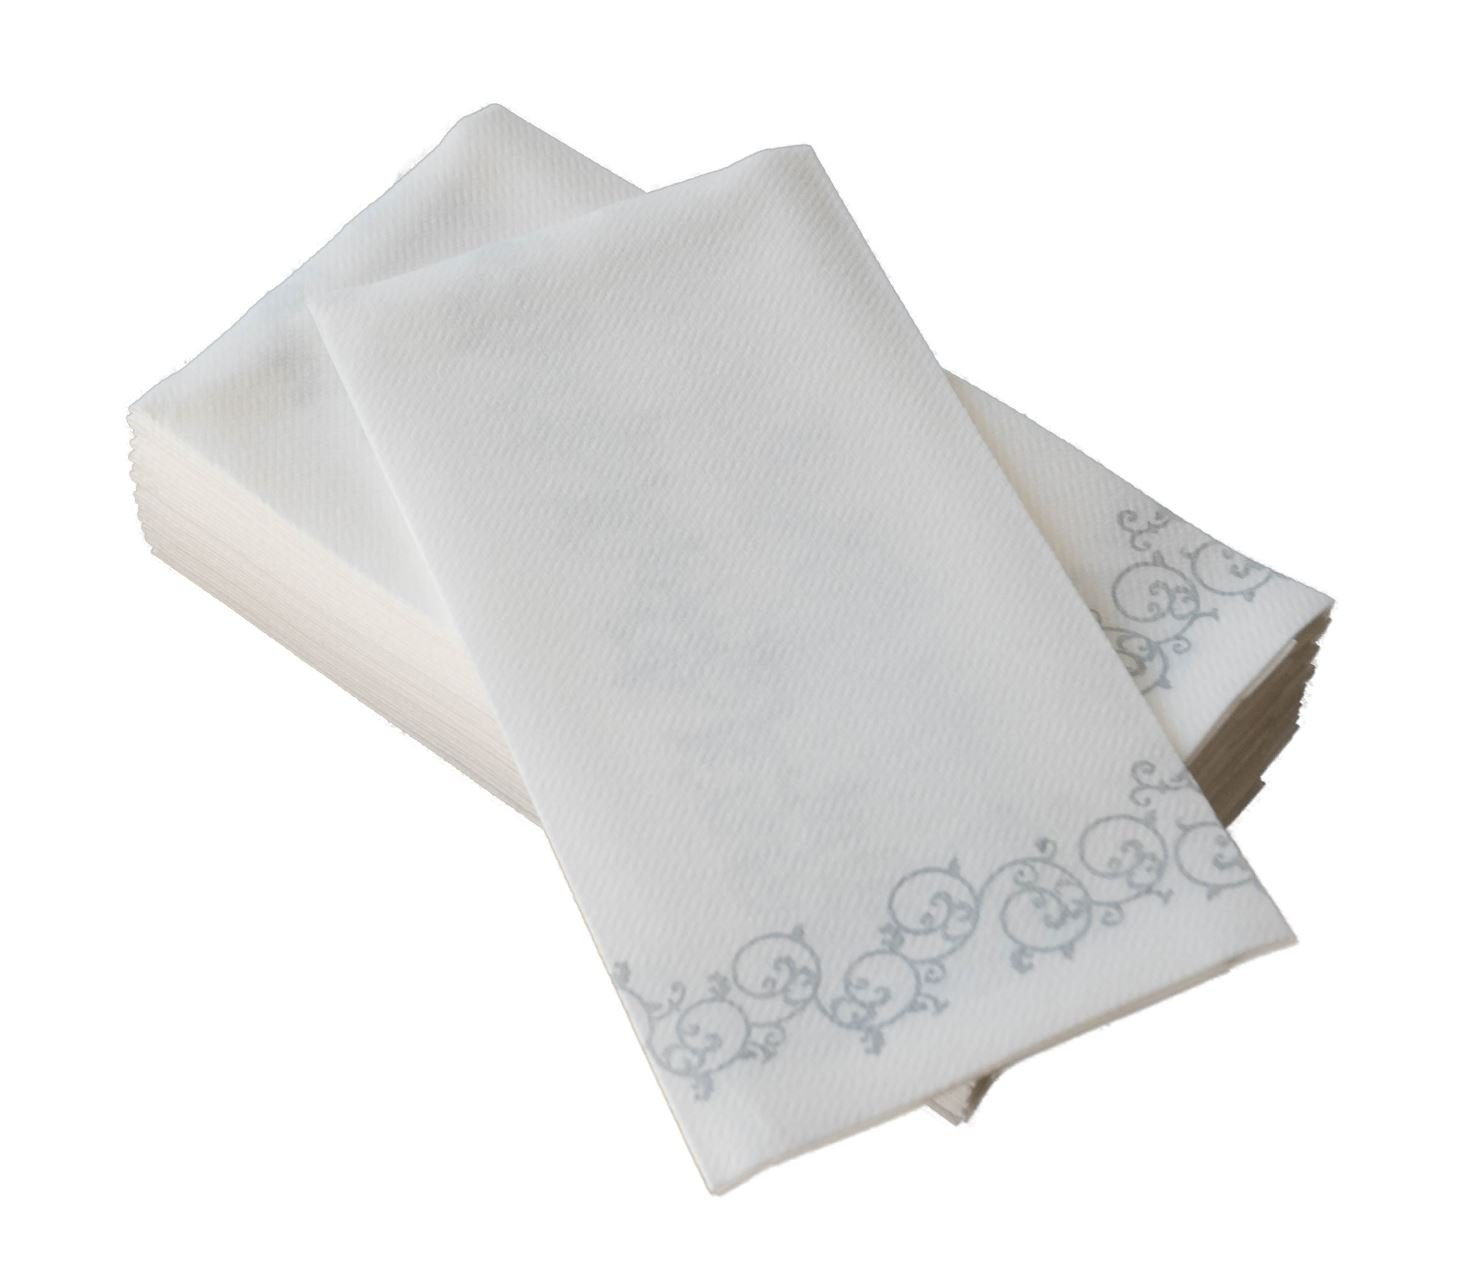 Simulinen Decorative Linen-Feel Bathroom Hand Towels – Silver Floral Disposable Paper Towels for Guests – Box of 100 – Perfect Size: 12x17 inches Unfolded & 8.5x4 inches Folded